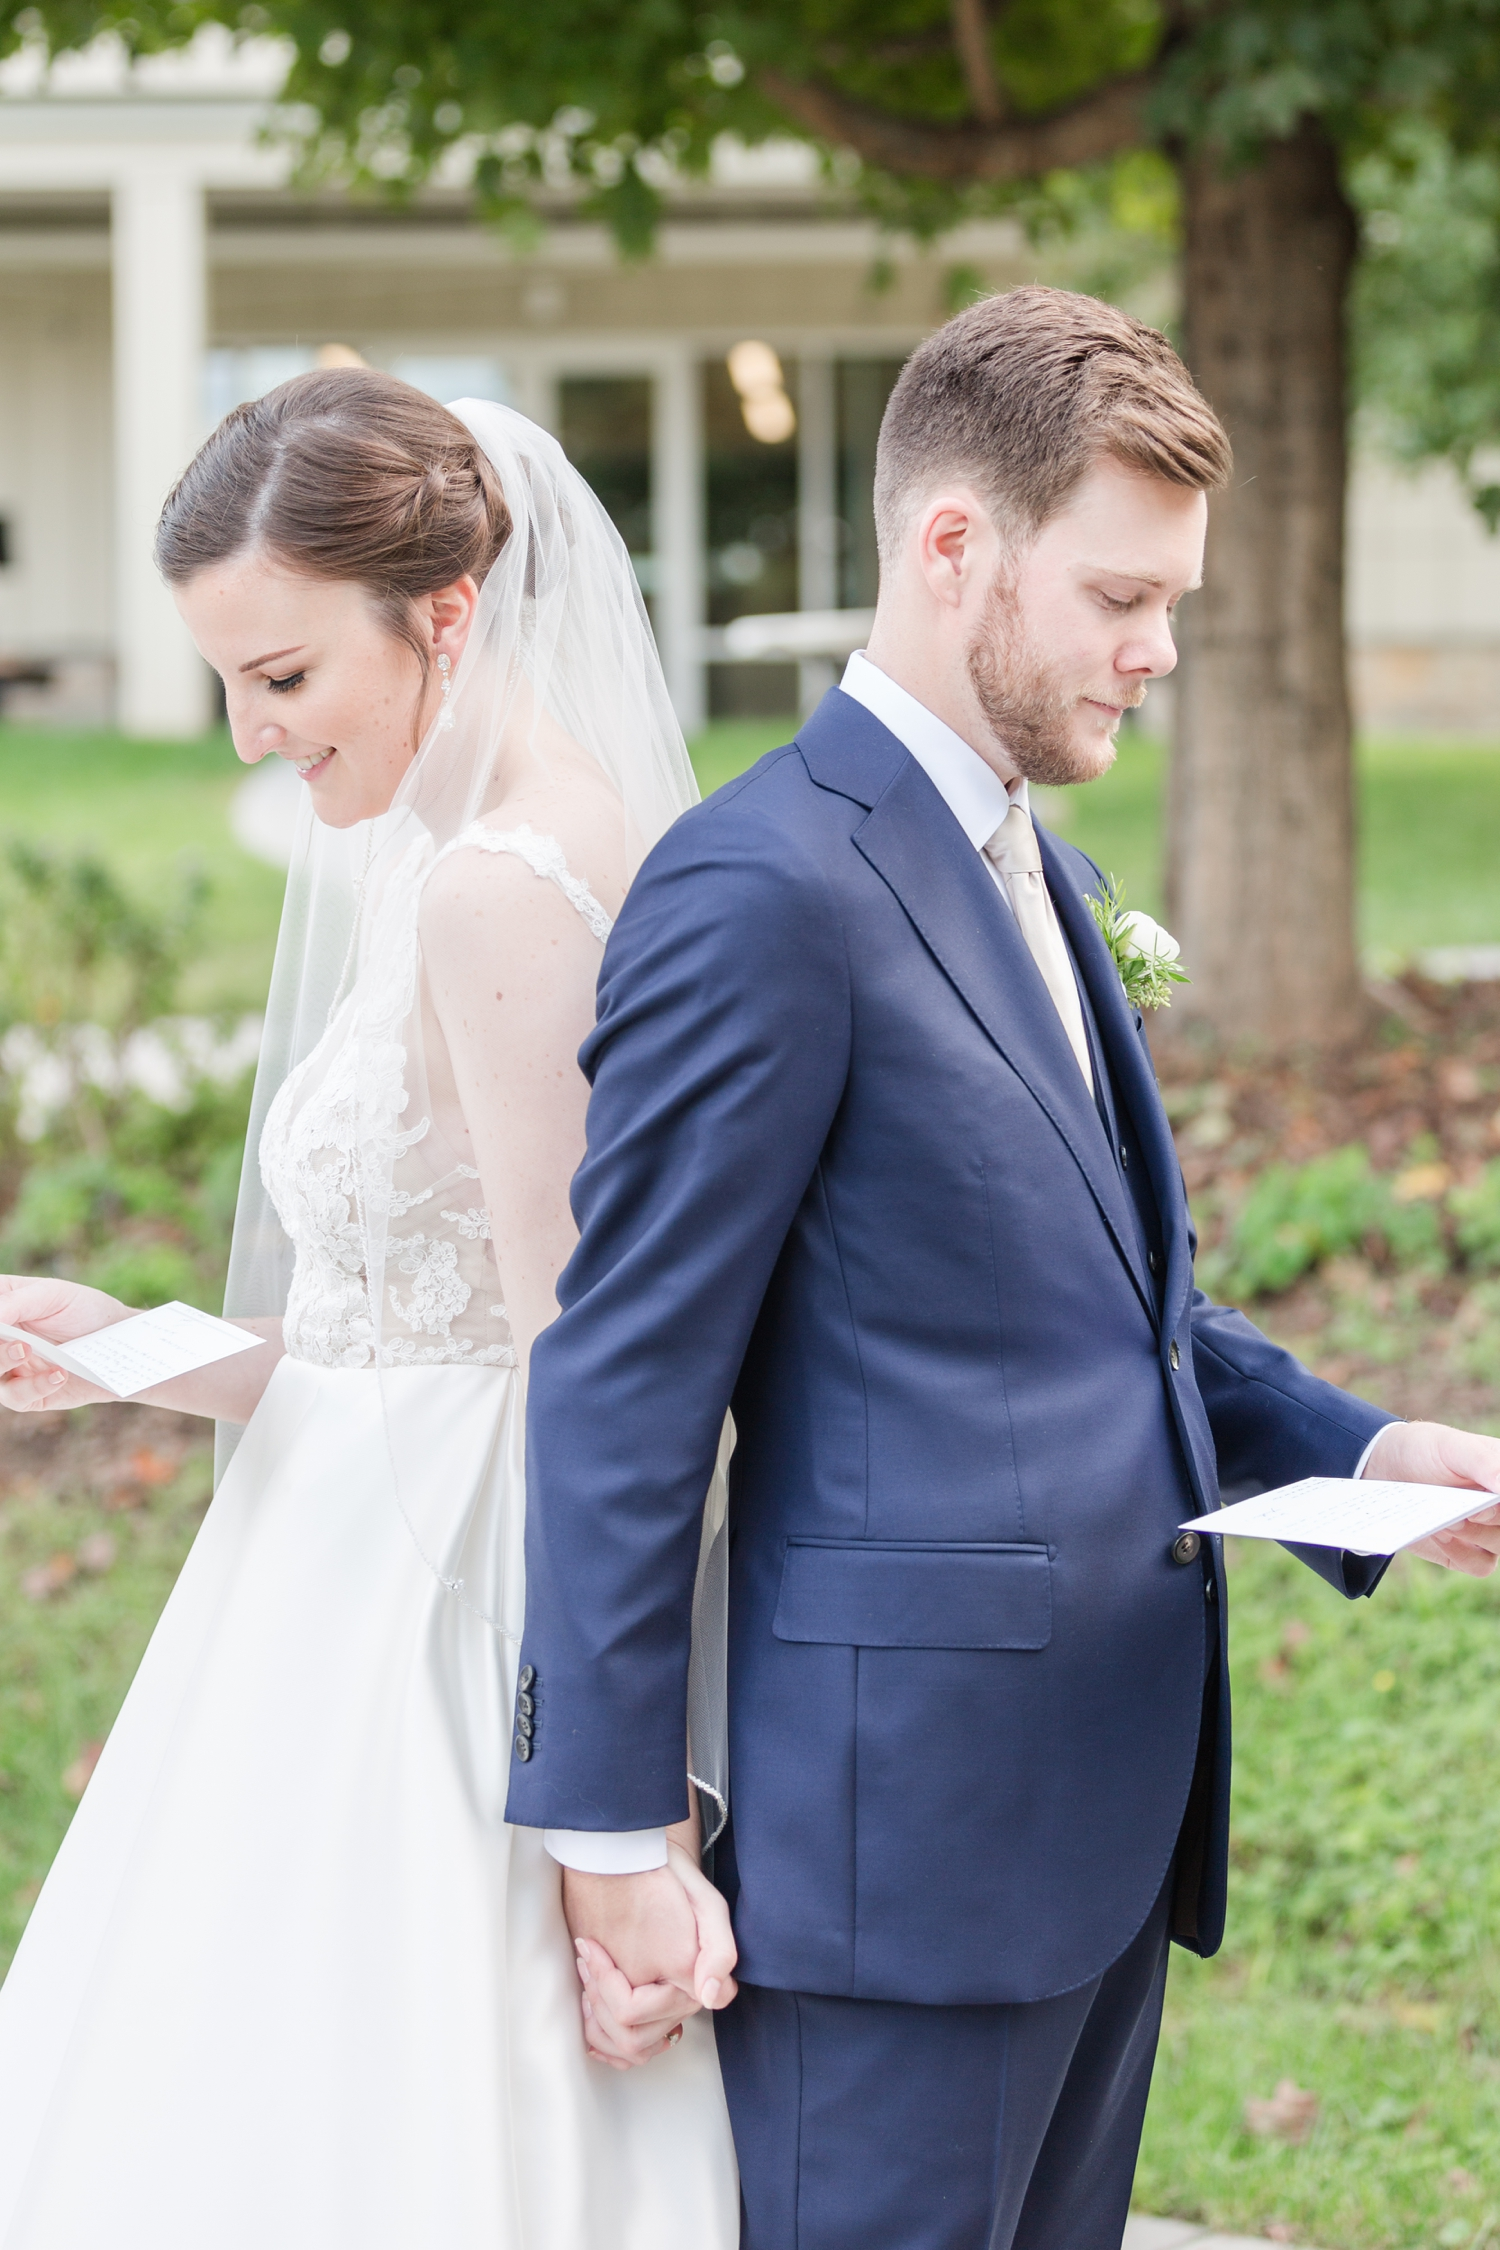 They read letters from each other back to back before the Ceremony. So sweet!